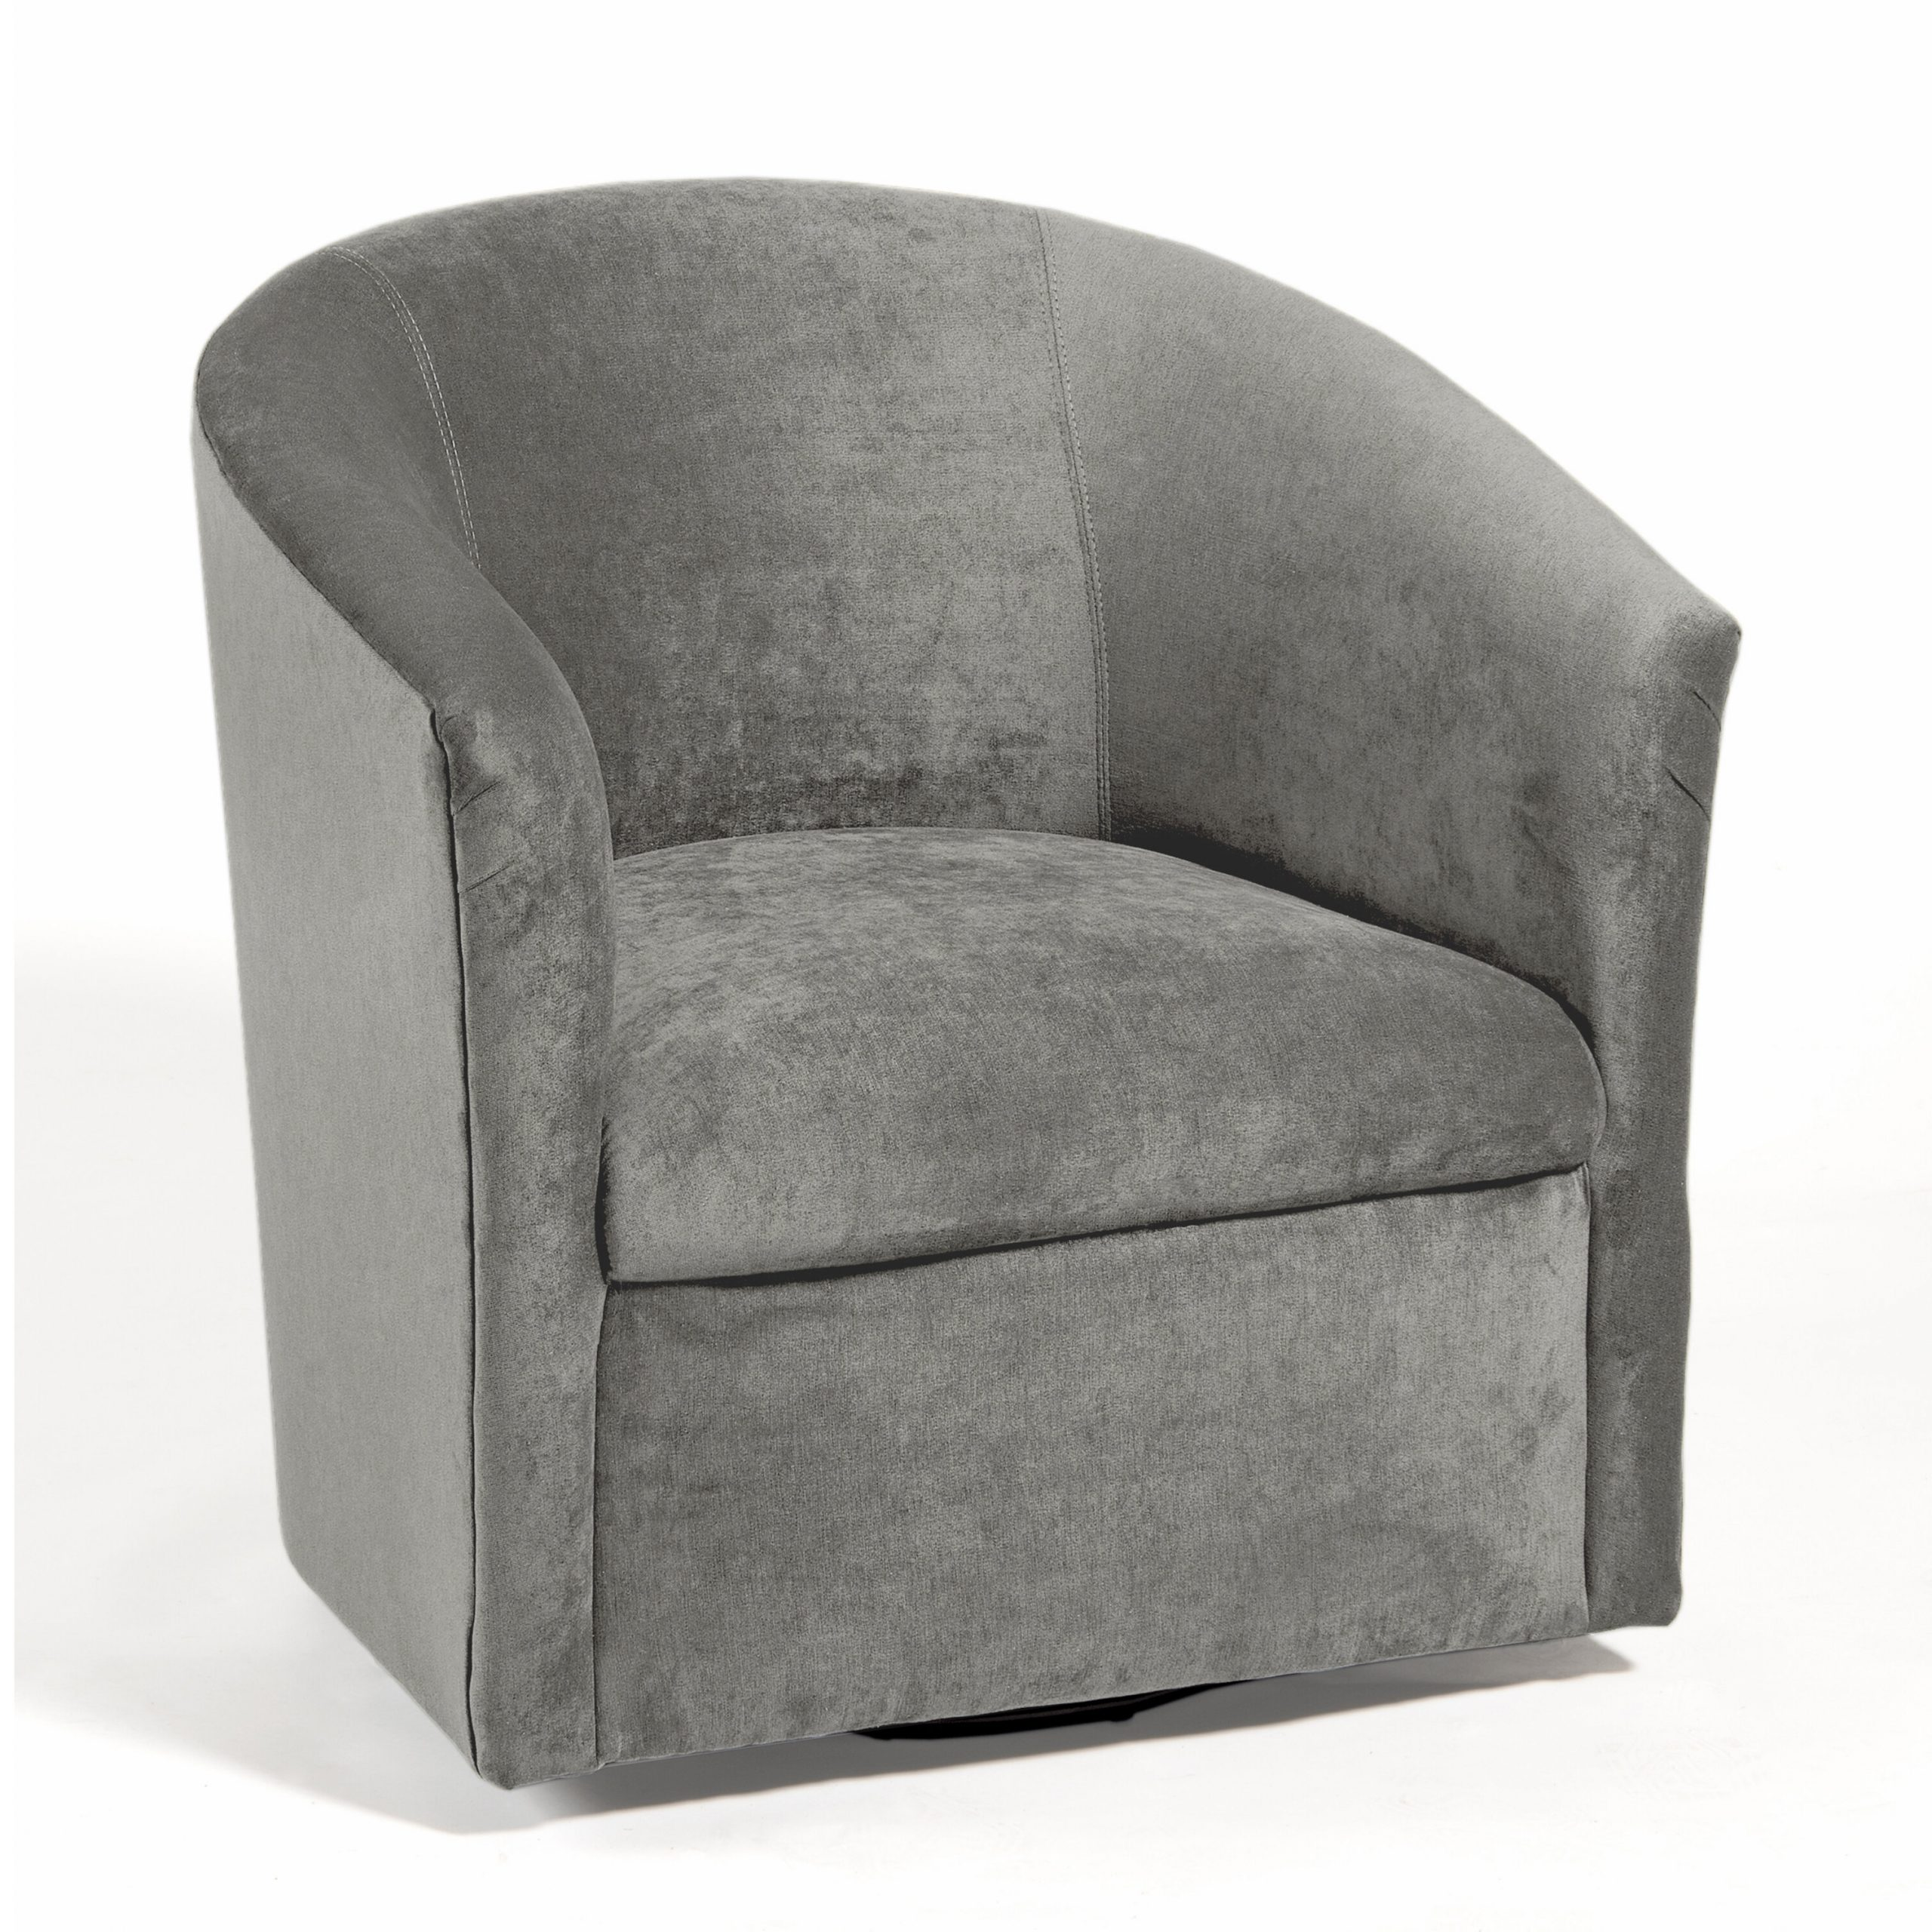 Zalina Swivel Armchairs Regarding Most Recent Swivel Chairs (View 6 of 20)